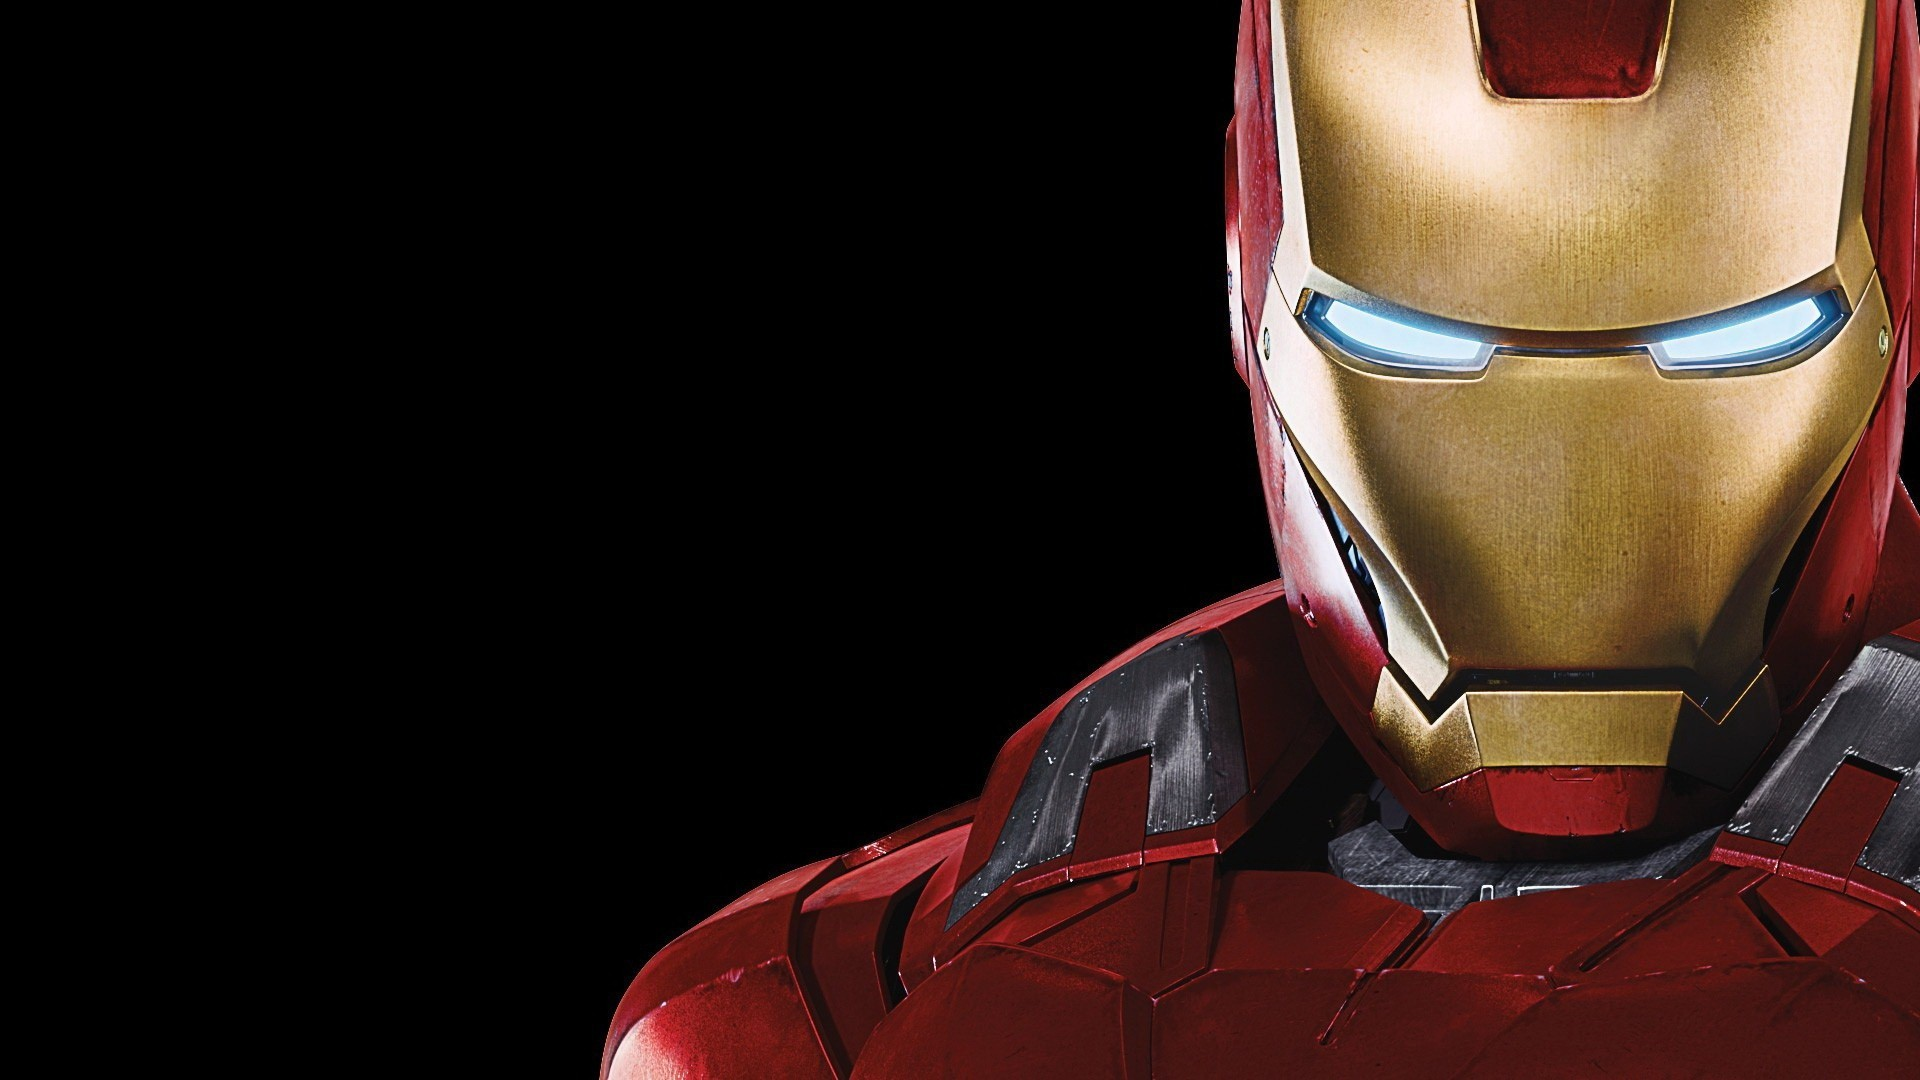 Iron Man Wallpaper 4k 1600x900 Download Hd Wallpaper Wallpapertip